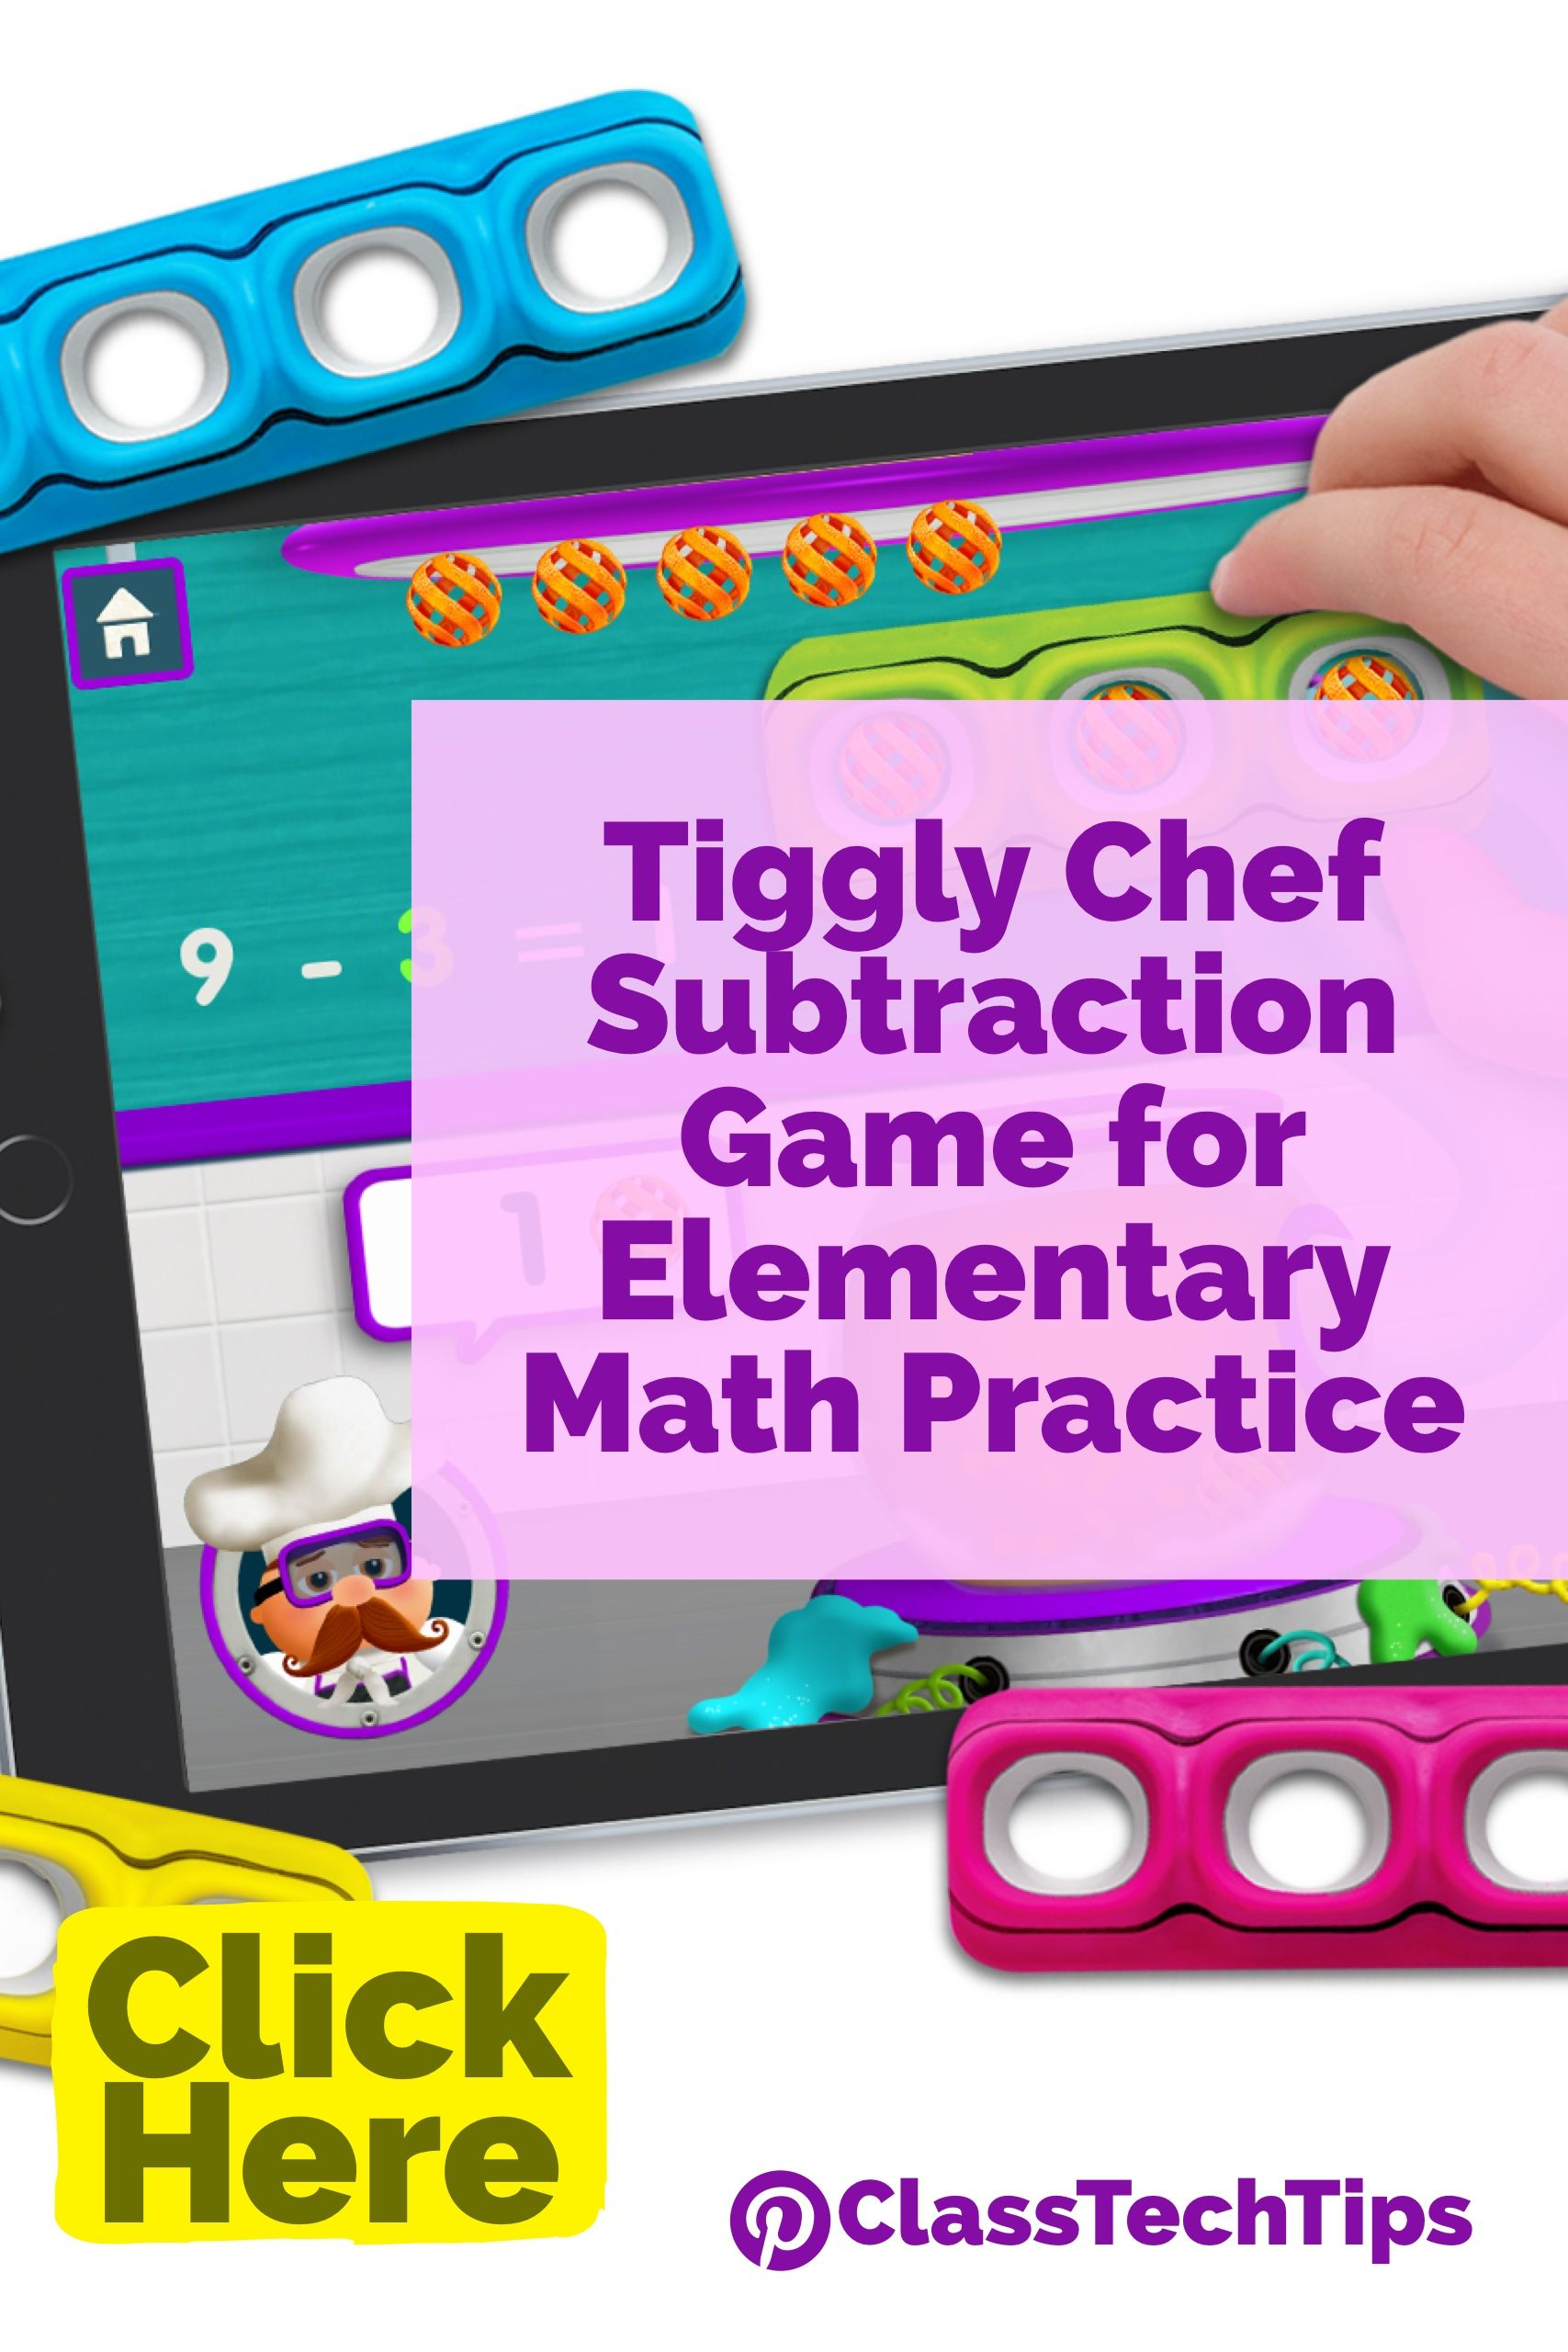 Tiggly Chef Subtraction Game for Elementary Math Practice